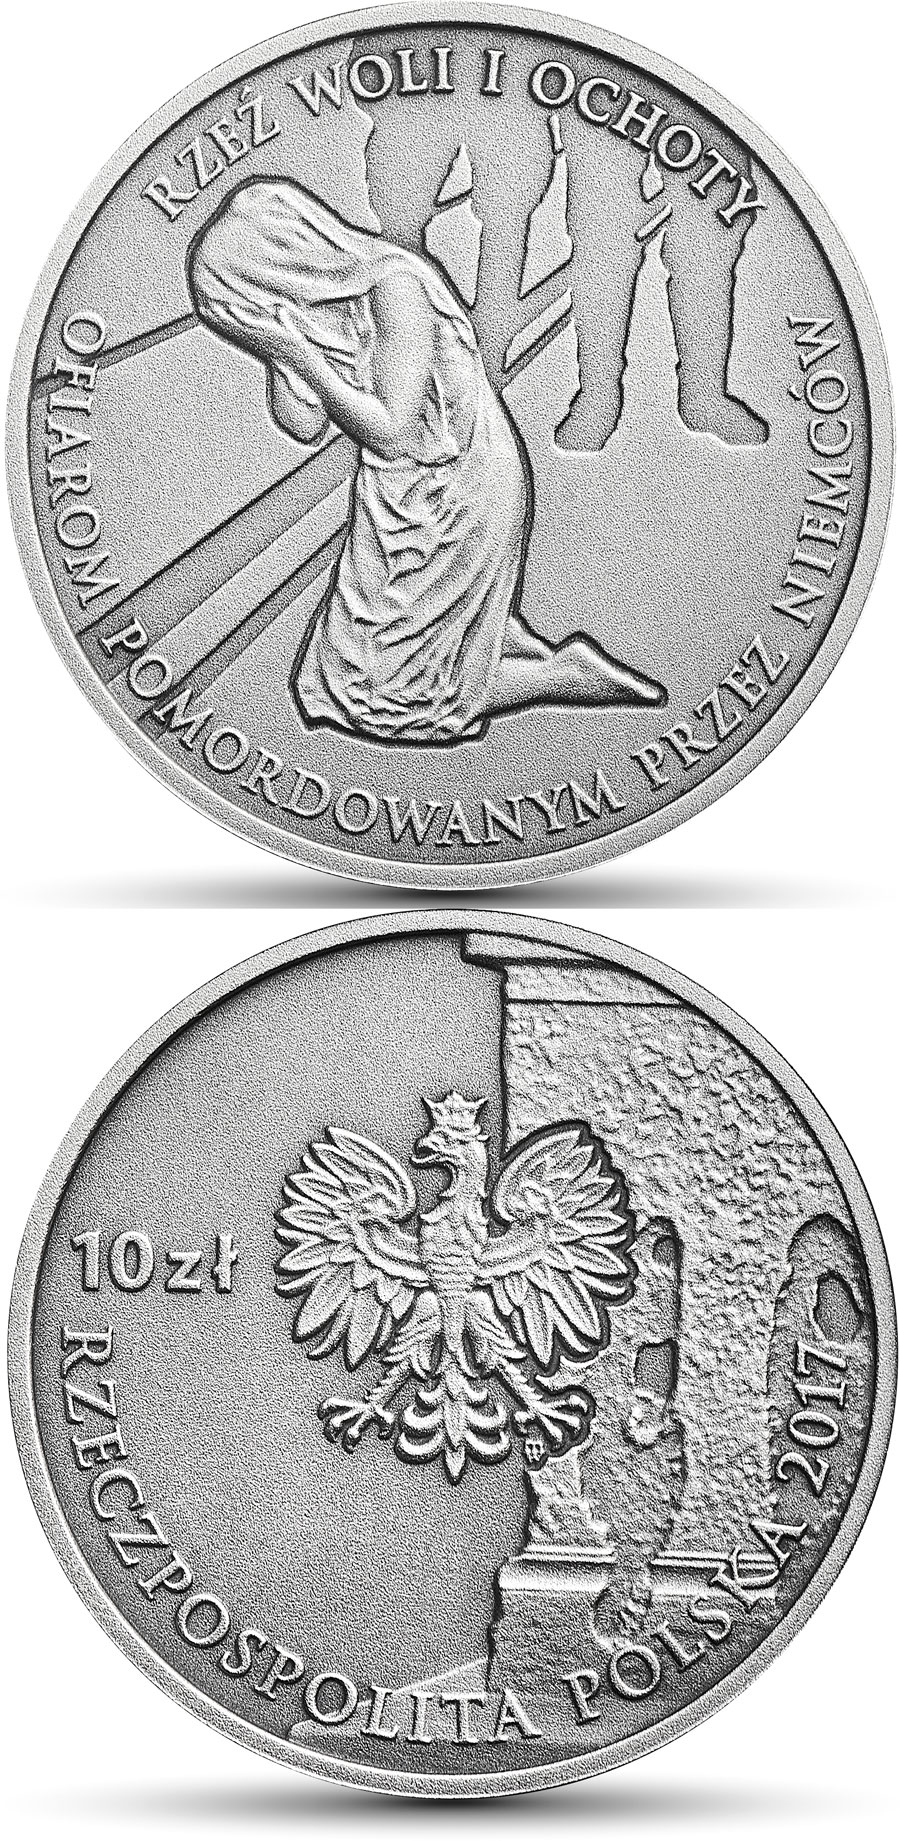 Image of 10 zloty coin – The Wola and Ochota Massacres  | Poland 2017.  The Silver coin is of Proof quality.